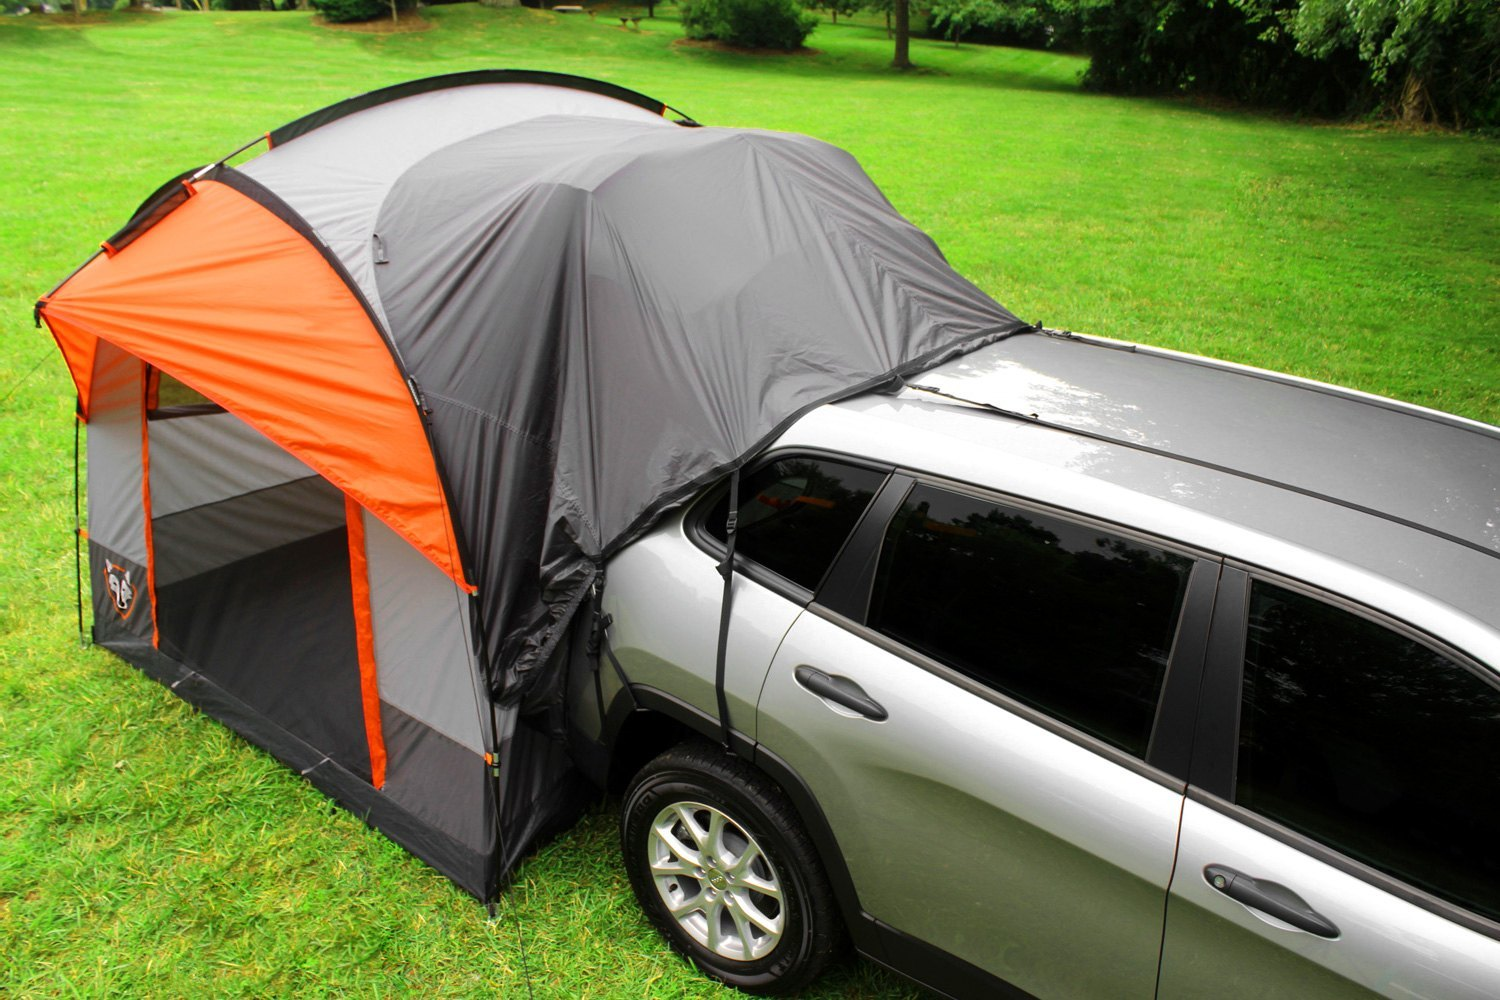 Cing Tent 4 Room With Screened Porch Ozark Trail 12 & Jeep 4 Room Tent - Best Tent 2018